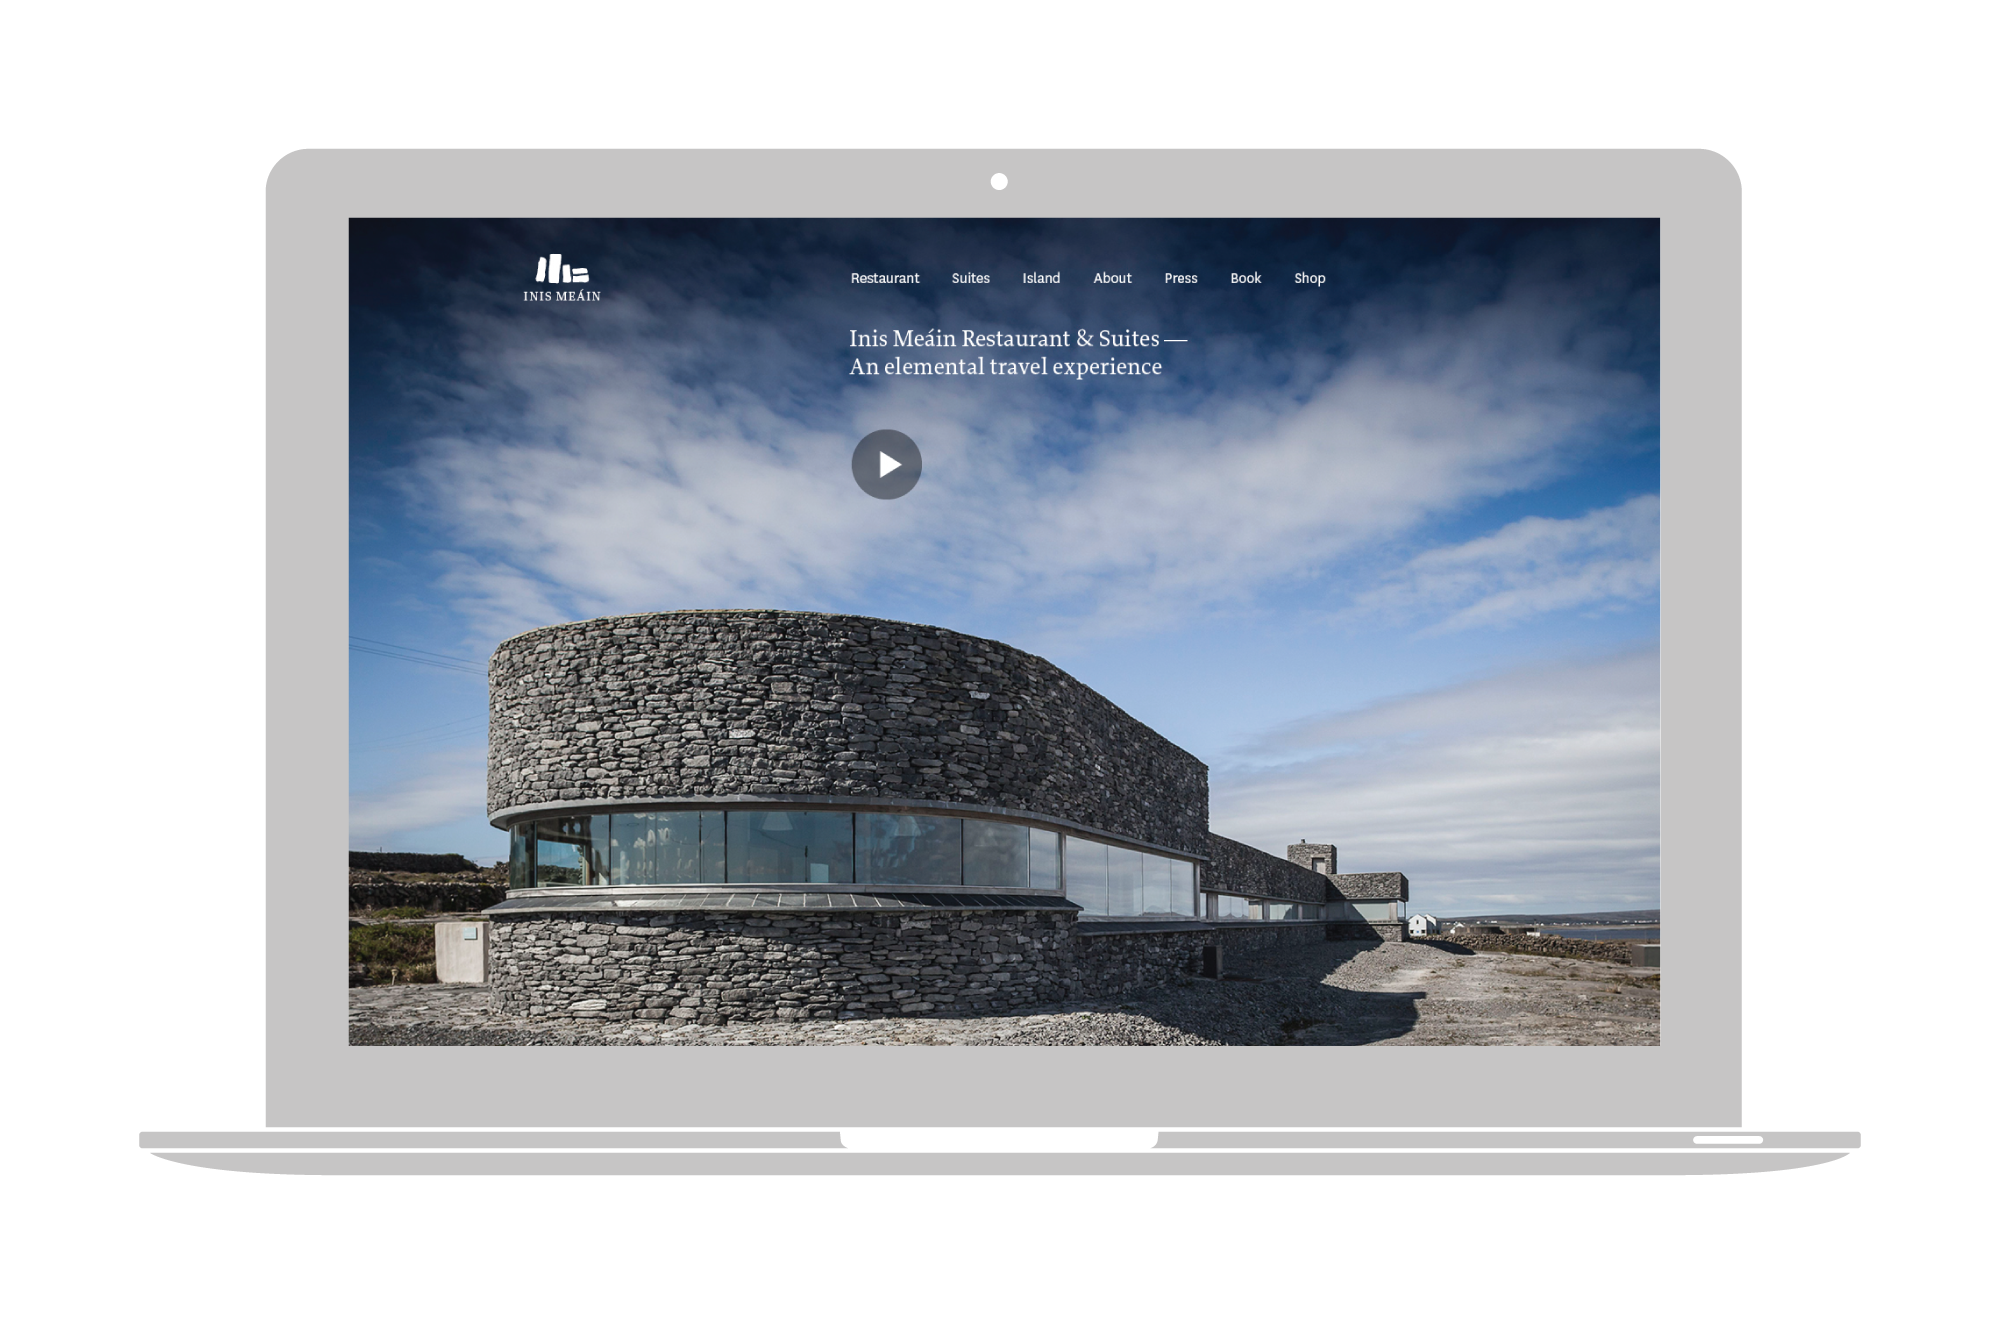 Cover image: Inis Méain Restaurant & Suites Website (2013)